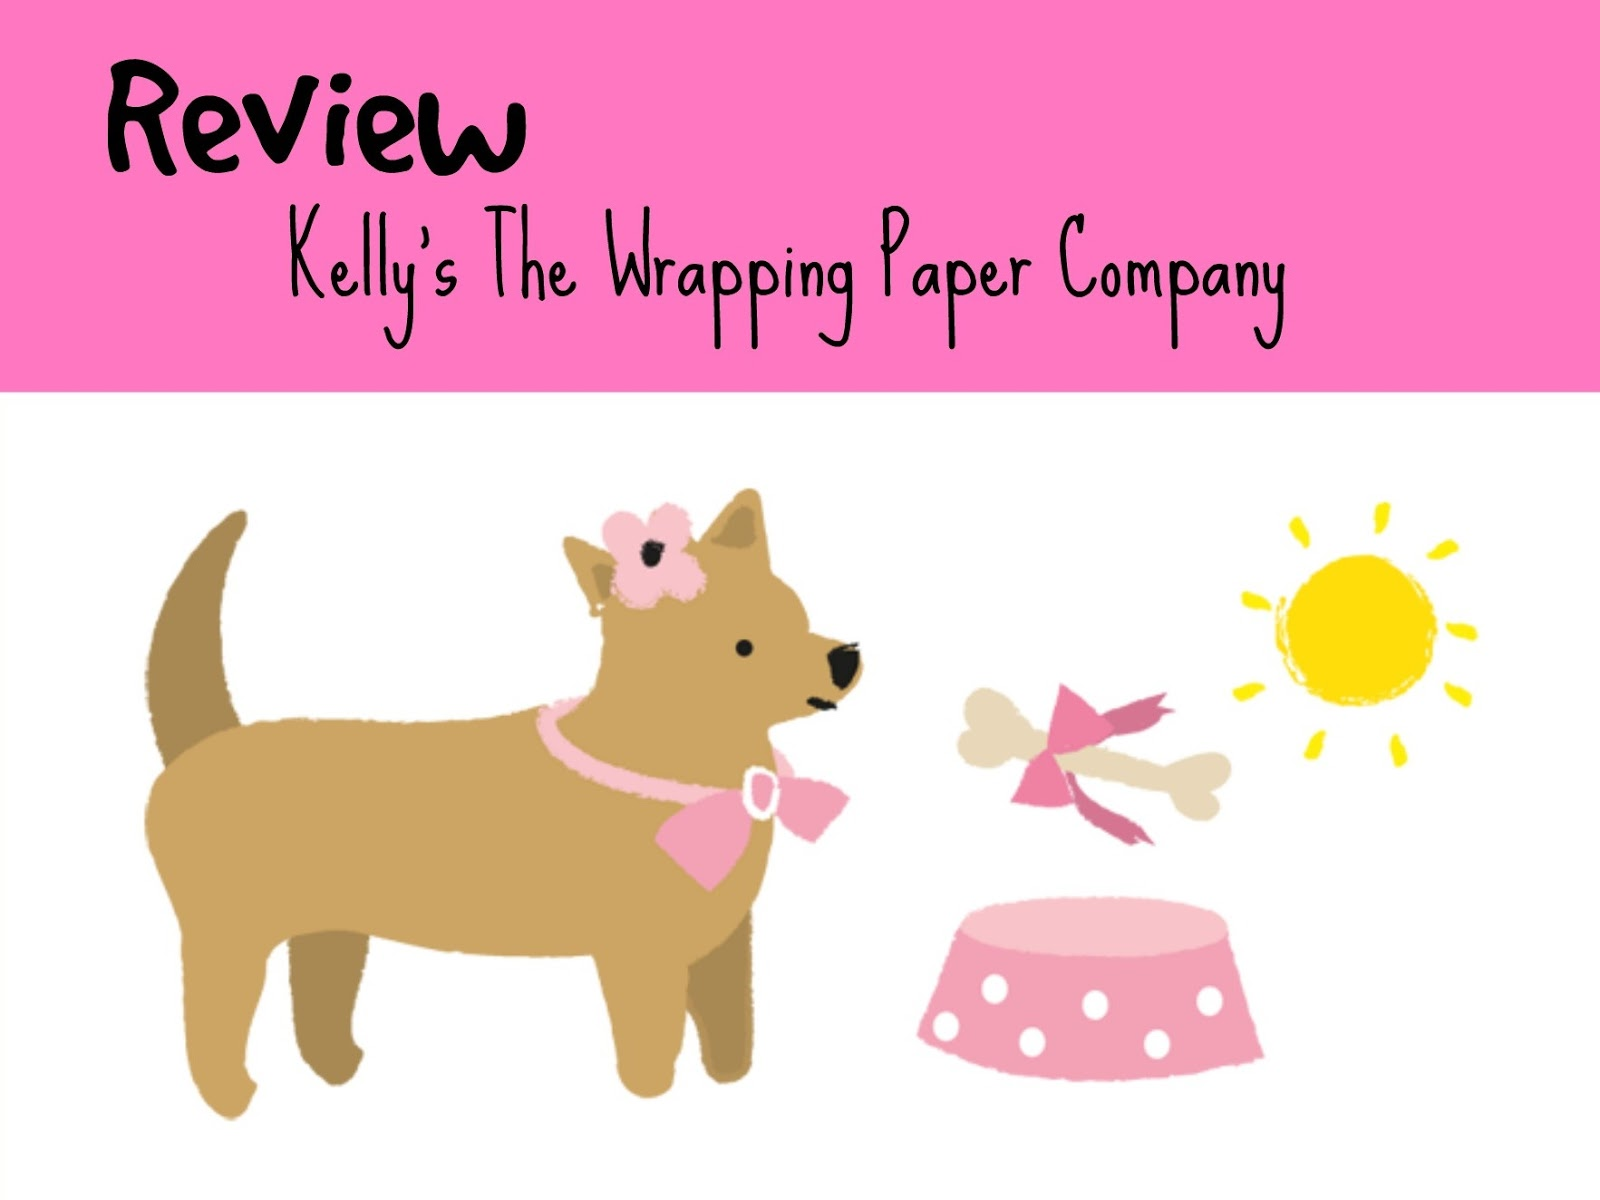 kelly paper company Glatfelter, global supplier and leading manufacturer of quality printing papers,  specialty papers, and engineered and composite fibers products home page.